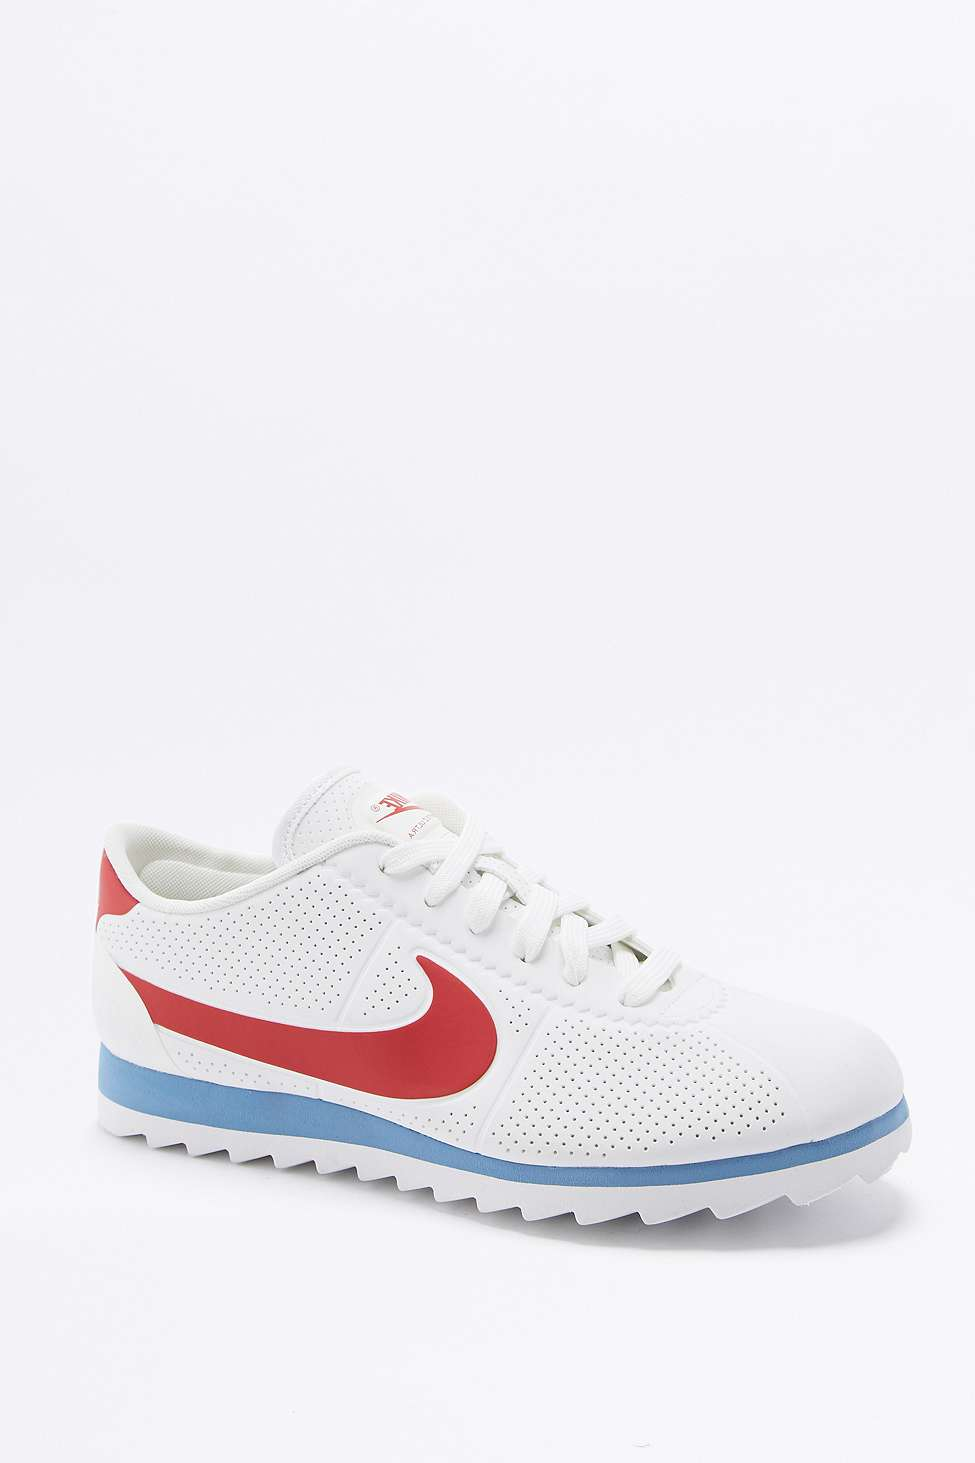 detailed look 50965 df8fb Nike Cortez Ultra Moire Red, White, and Blue Sneakers